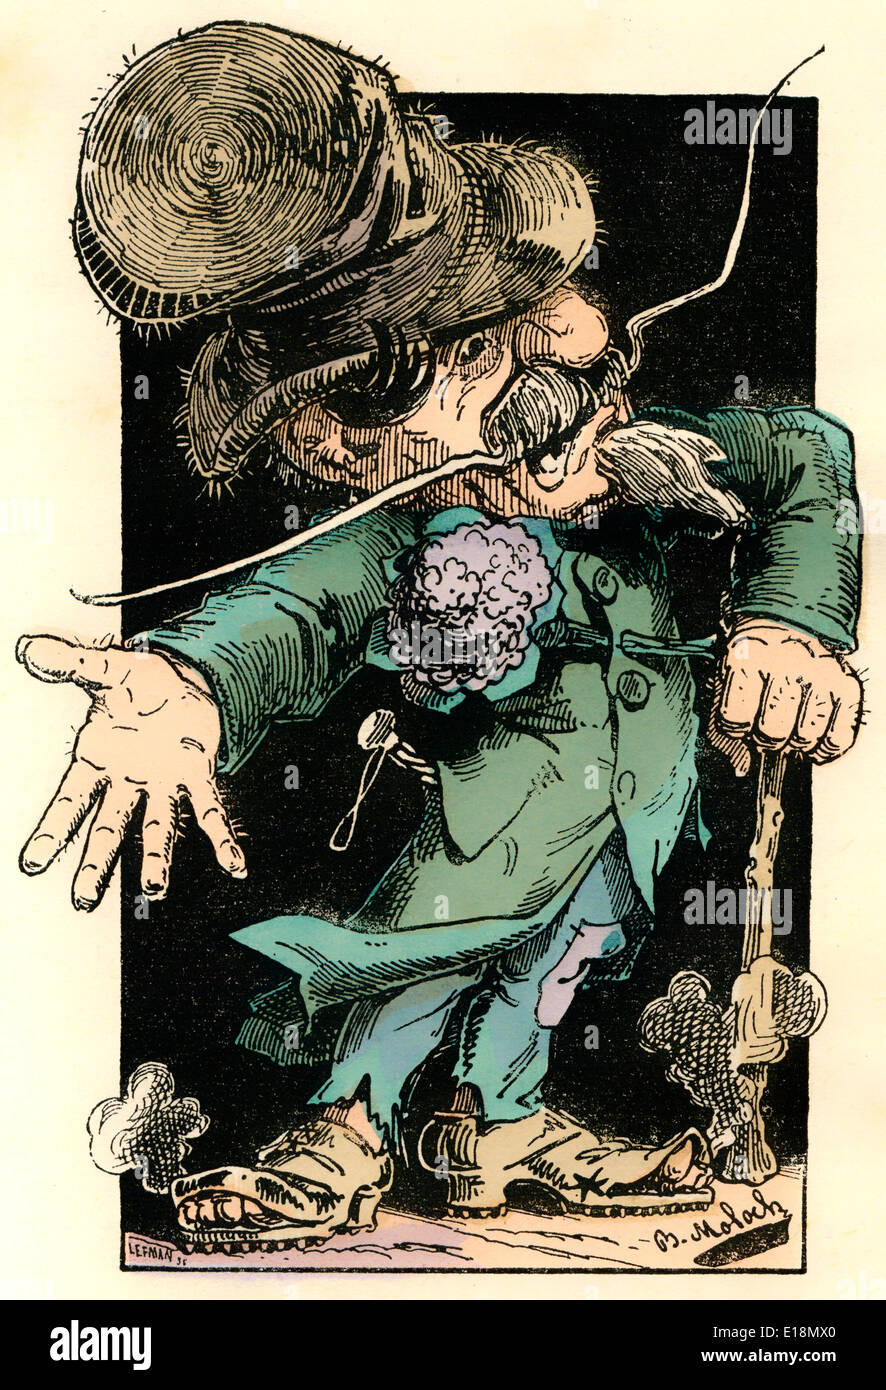 French newspaper Le Pays, personified as Debagoulard-Fracasse Le Pays, political caricature, 1882, by Alphonse Hector Stock Photo